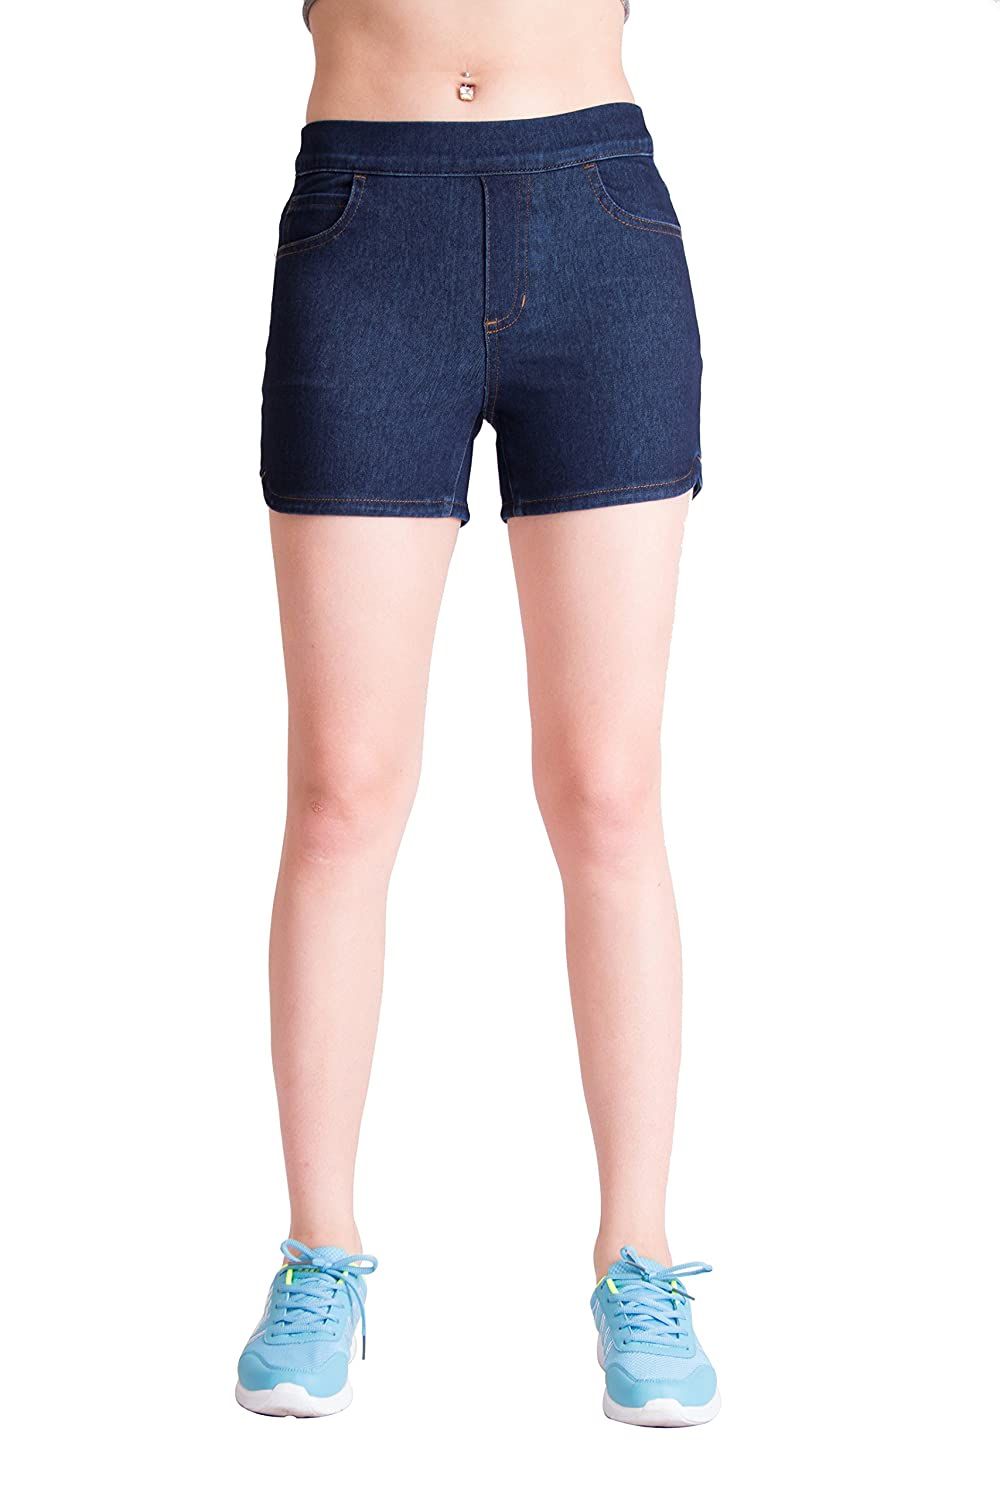 a0ec0441dd6  MATERIAL AND FEATURES  75% Cotton 23% Polyester 2% Spandex Super Soft Knit  Denim. The COZY BLUE SHORT is one of the kind denim short without metal  button ...